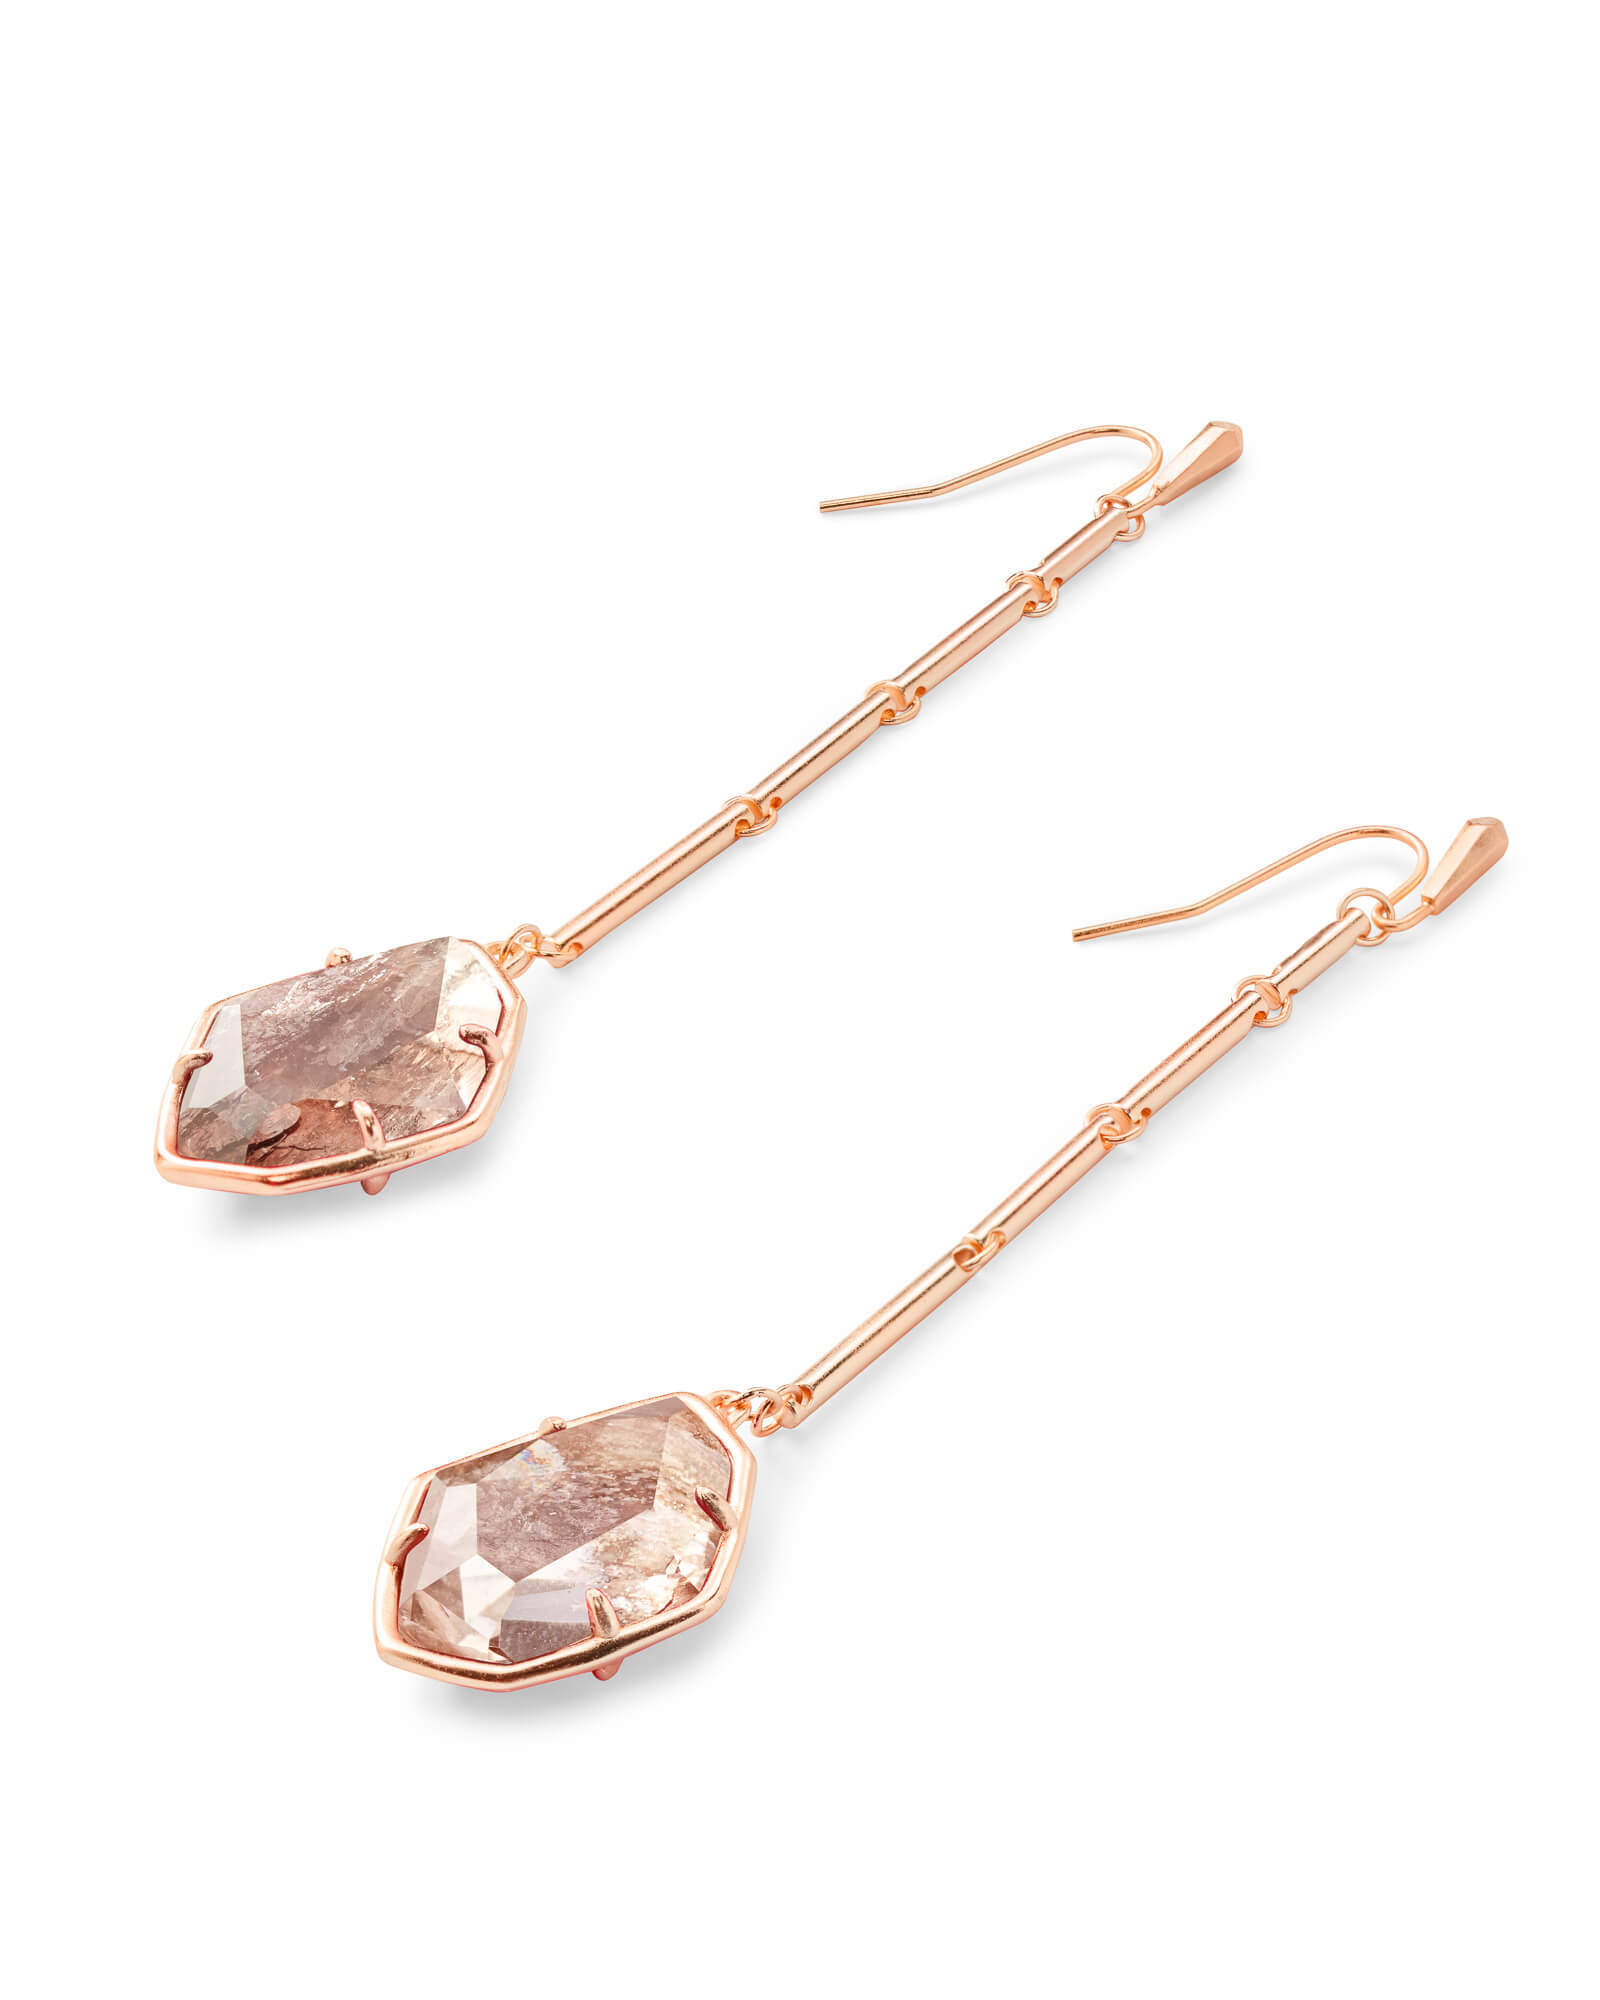 Charmian Rose Gold Drop Earrings in Sable Mica